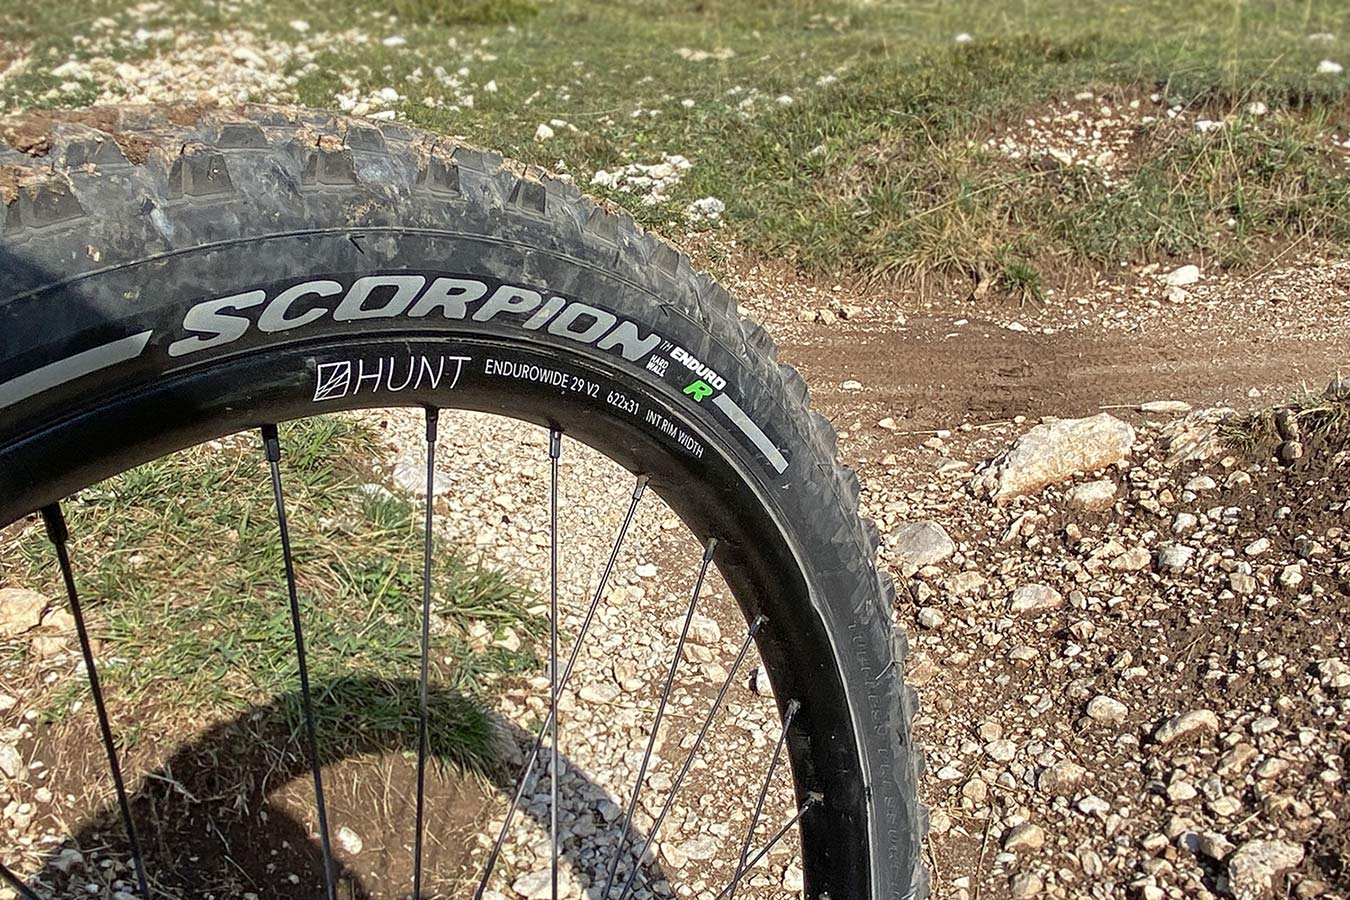 Hunt Enduro Wide v2, Trail Wide v2 MTB wheels get tougher - Bikerumor